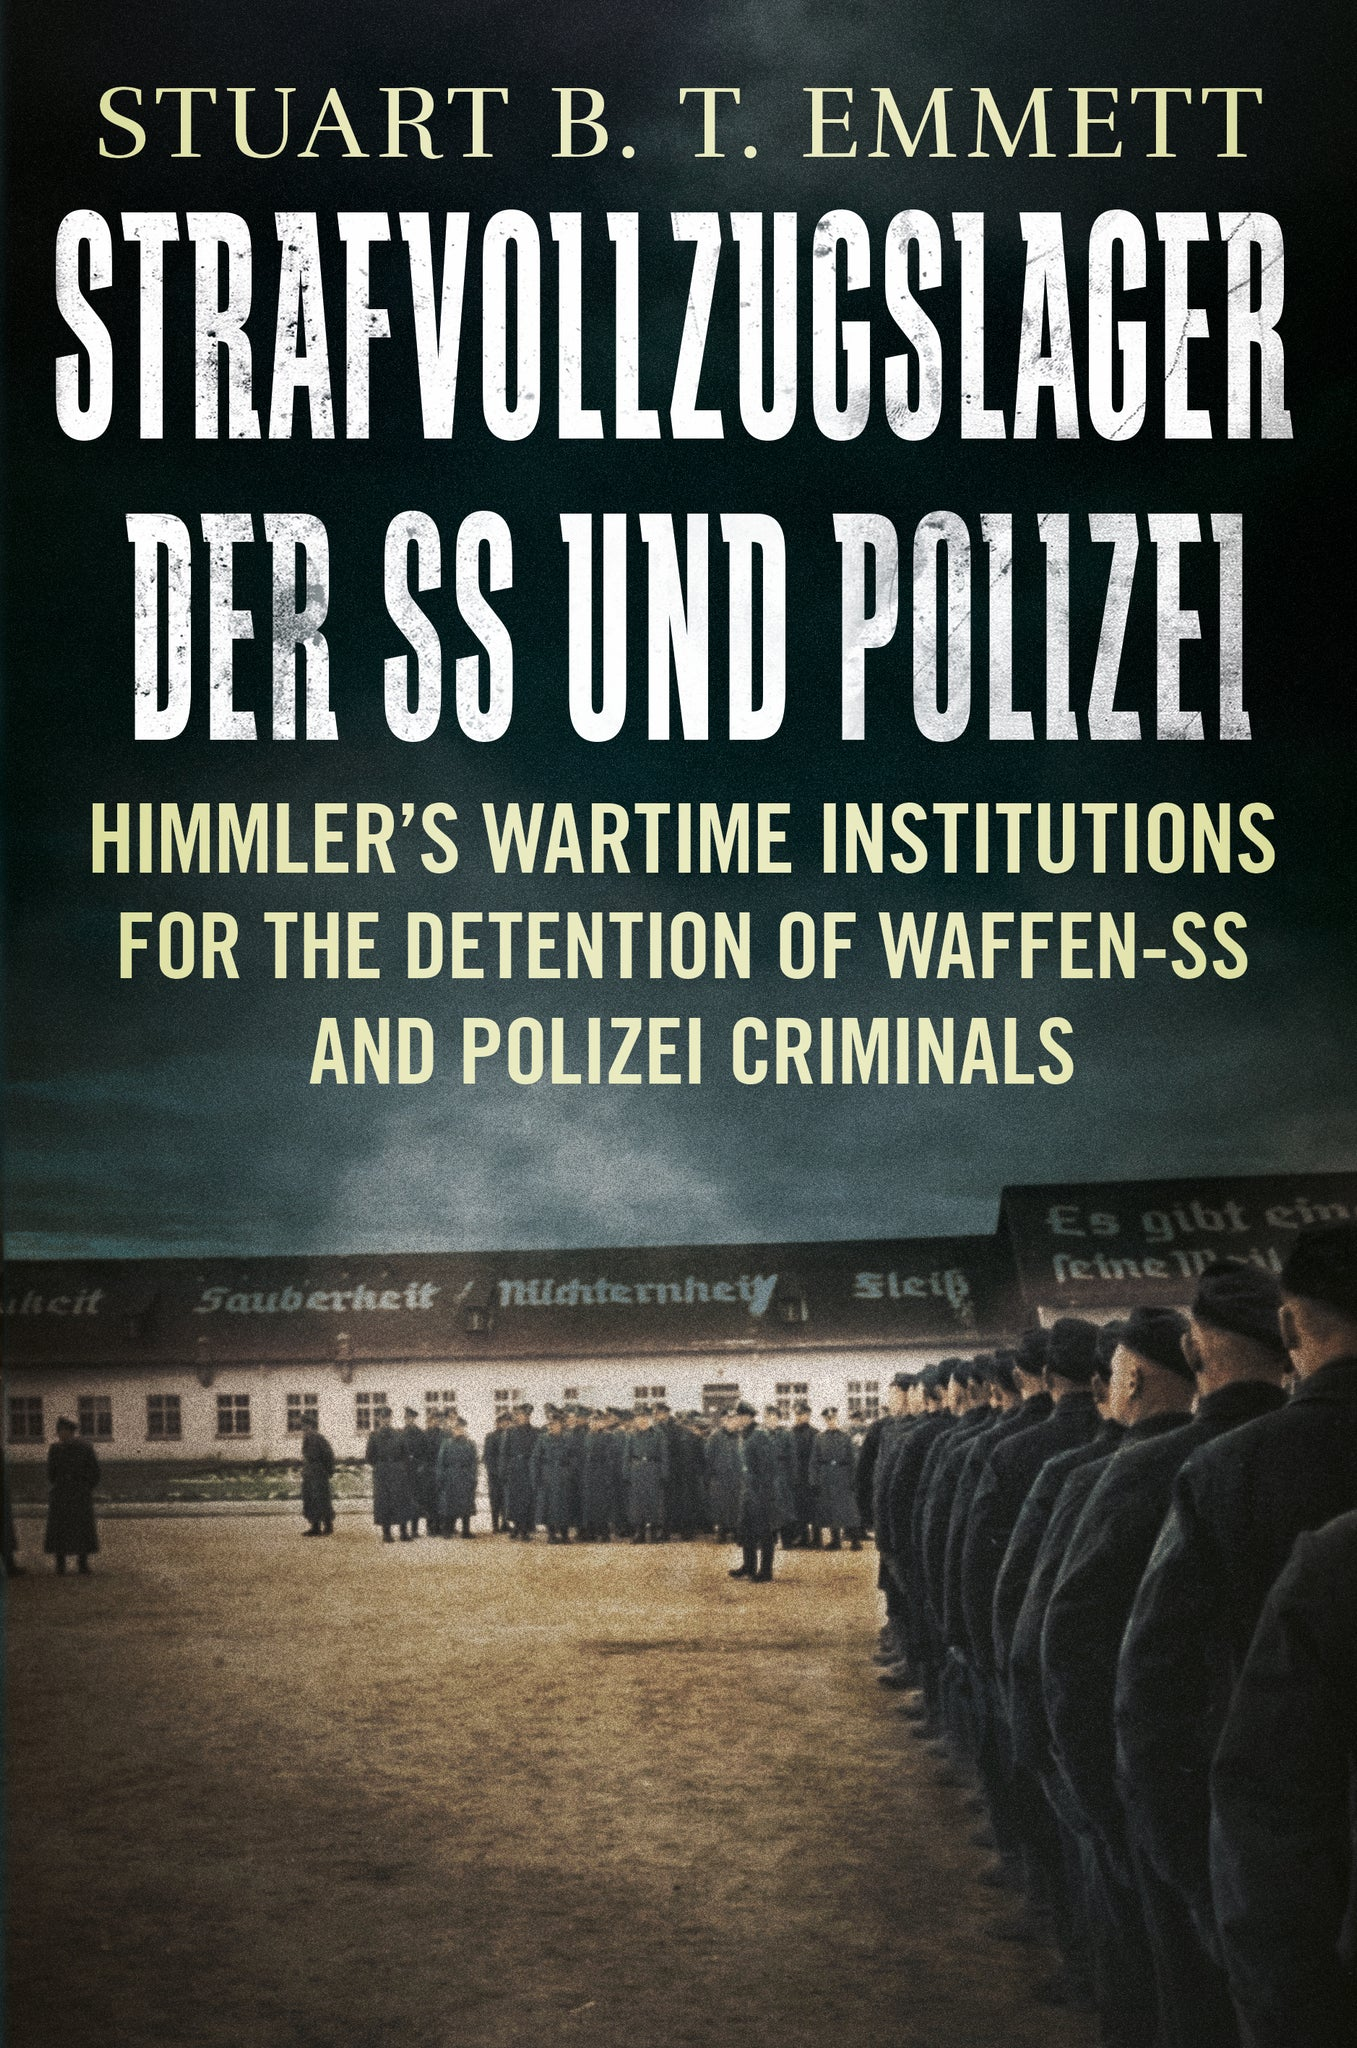 Strafvollzugslager der SS- und Polizei: Himmler's Wartime Institutions for the Detention of Waffen-SS and Polizei Criminals